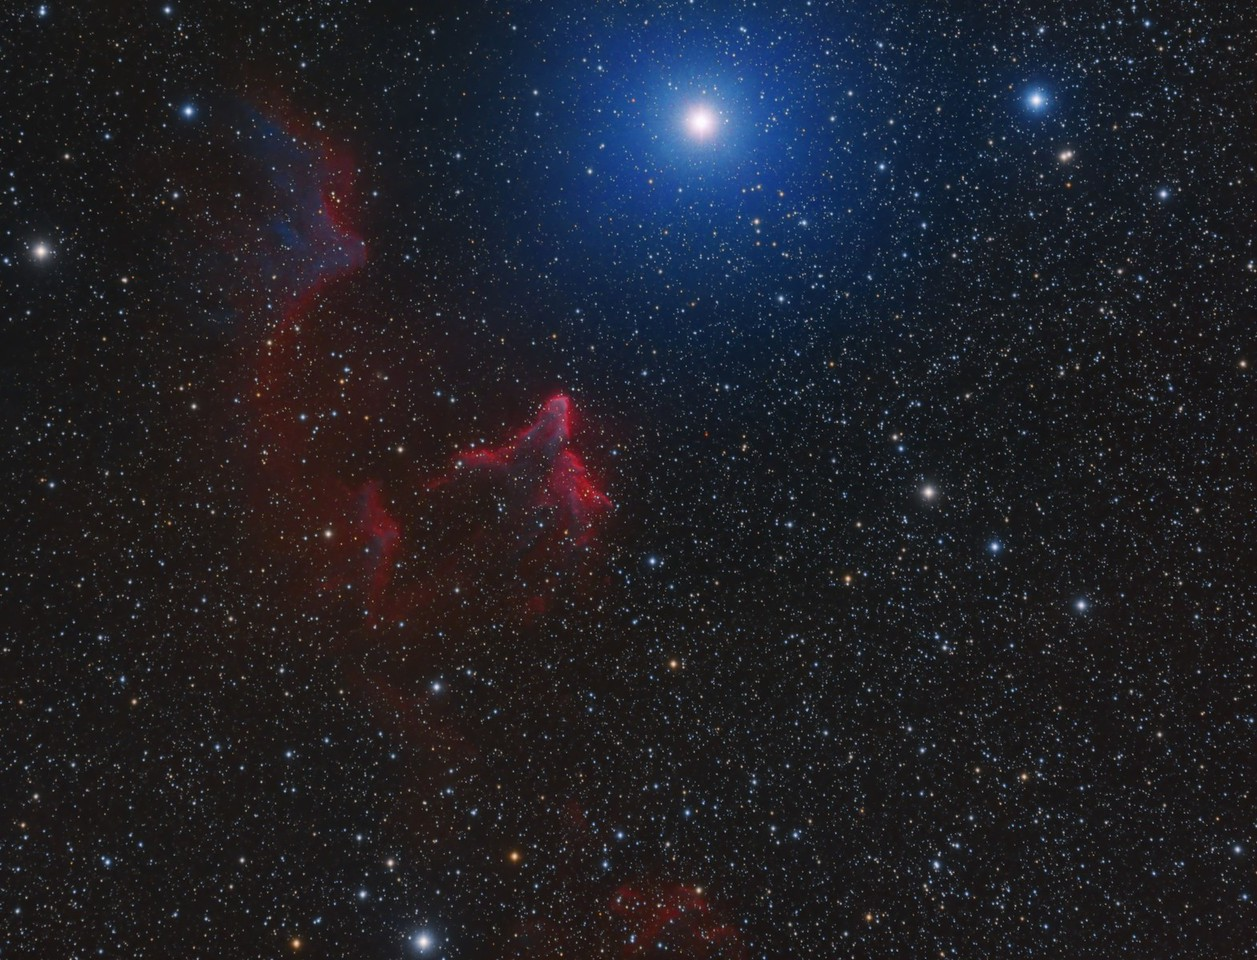 IC59 and IC63 in CassiopeiaI